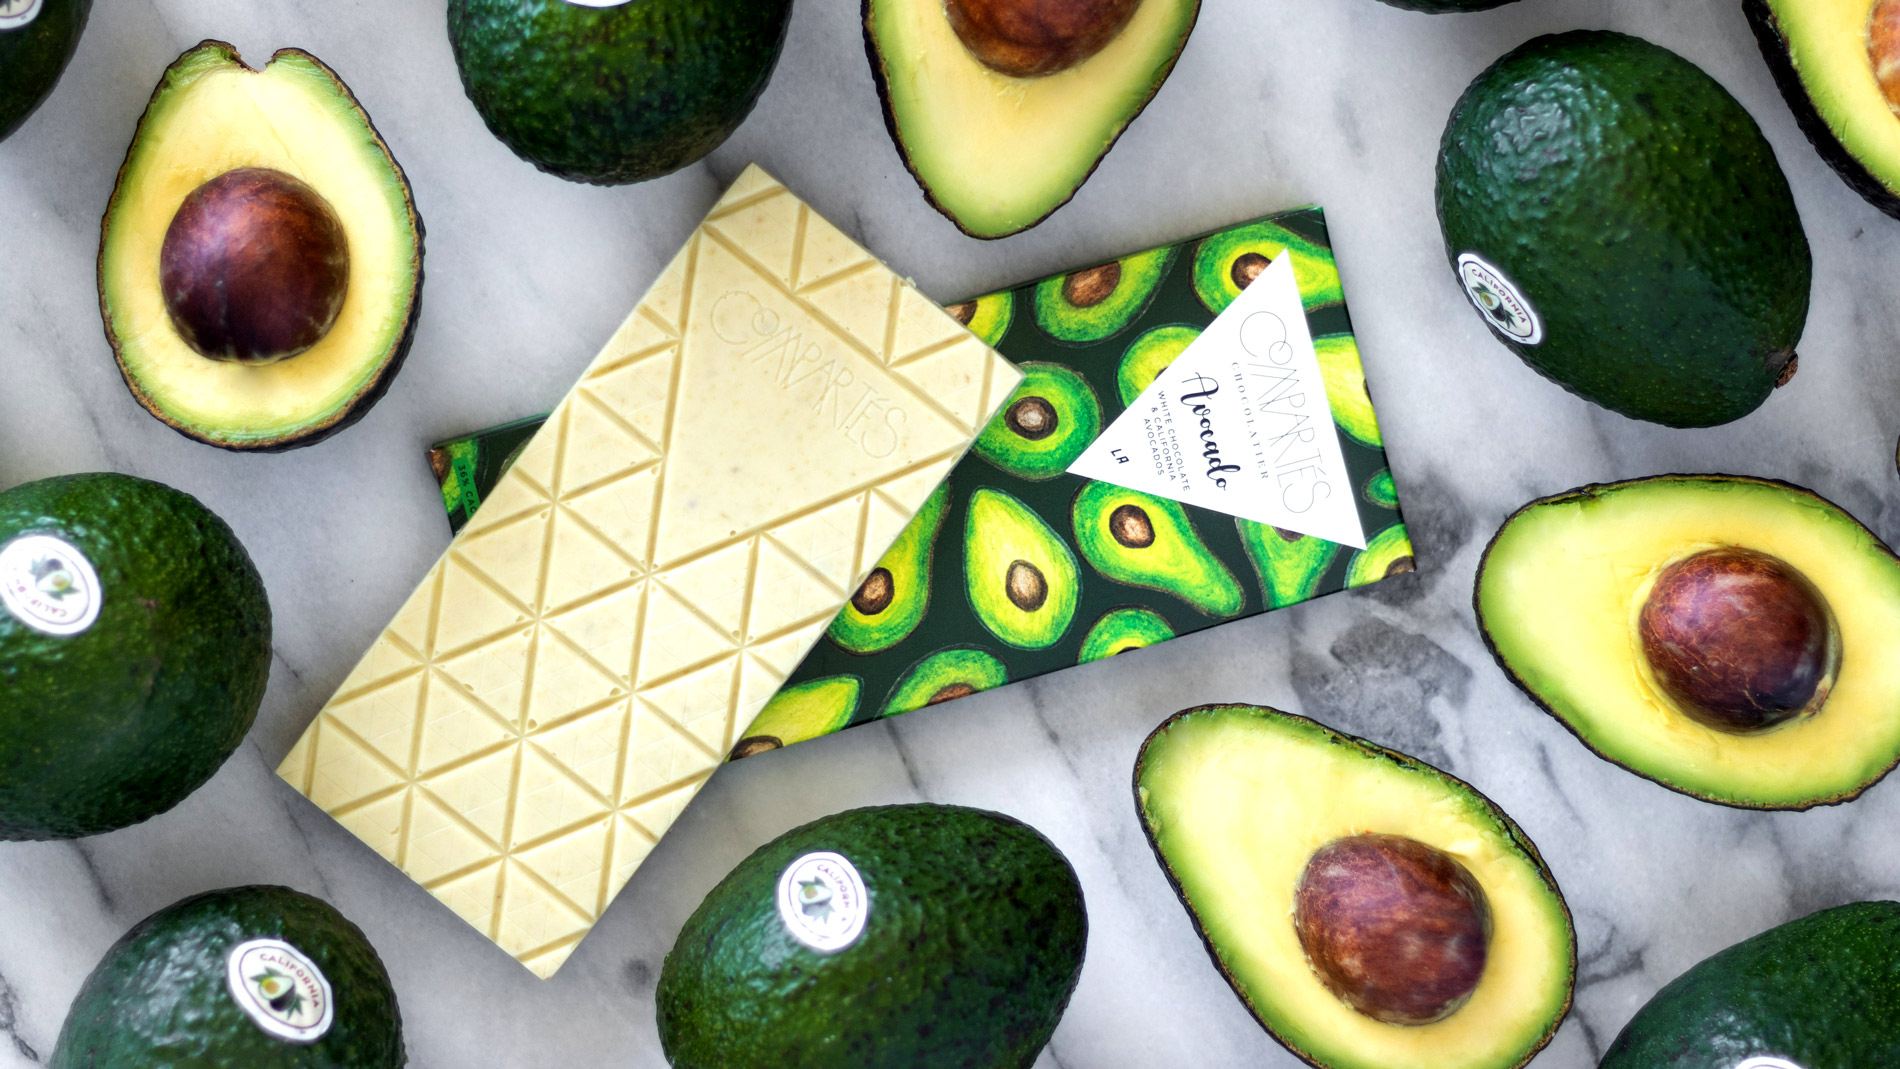 EC: Avocado Chocolate Bars Were Bound to Happen